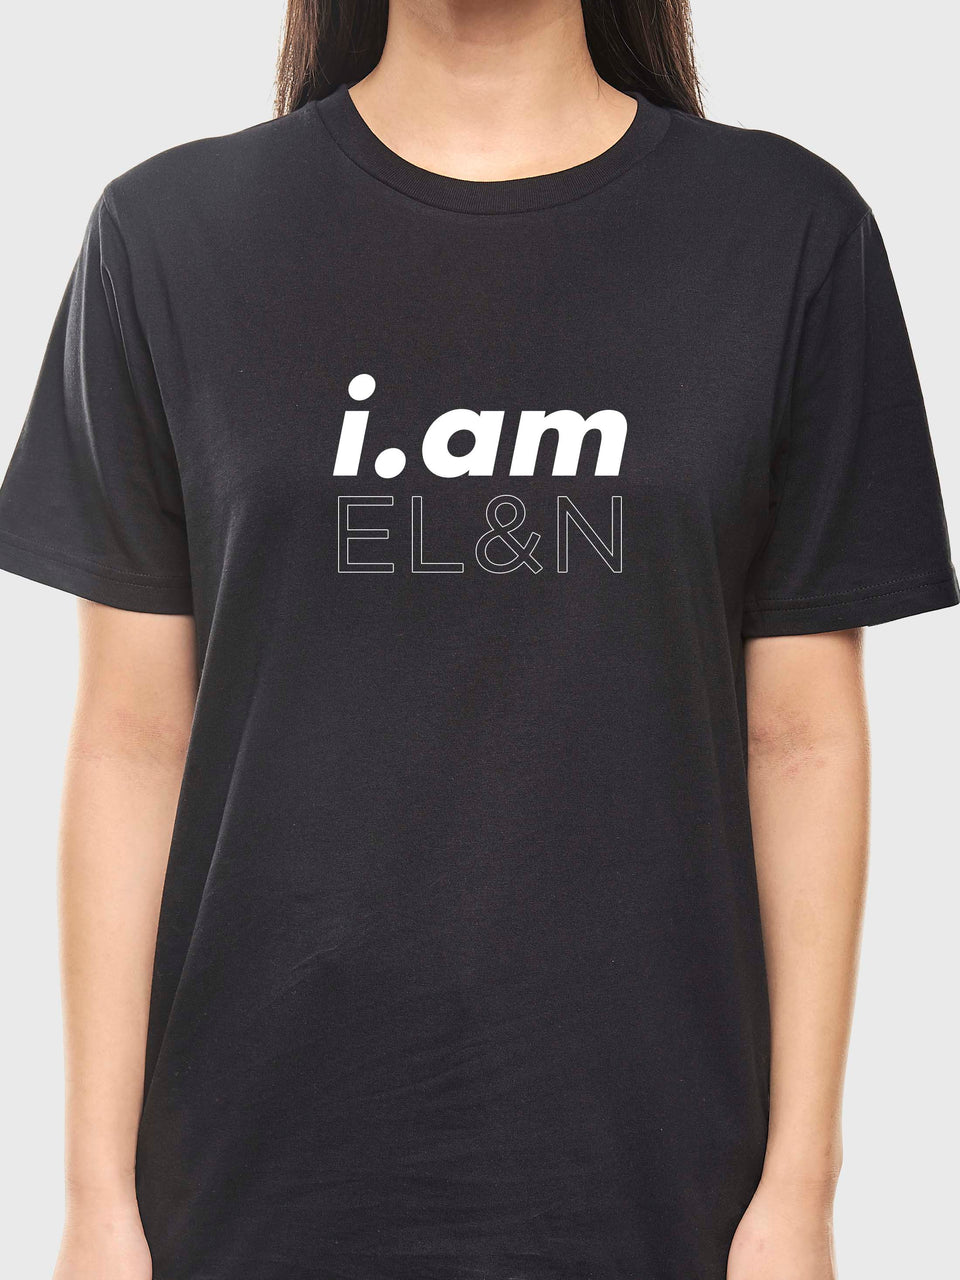 i.am EL&N - Black /Navy - Unisex T